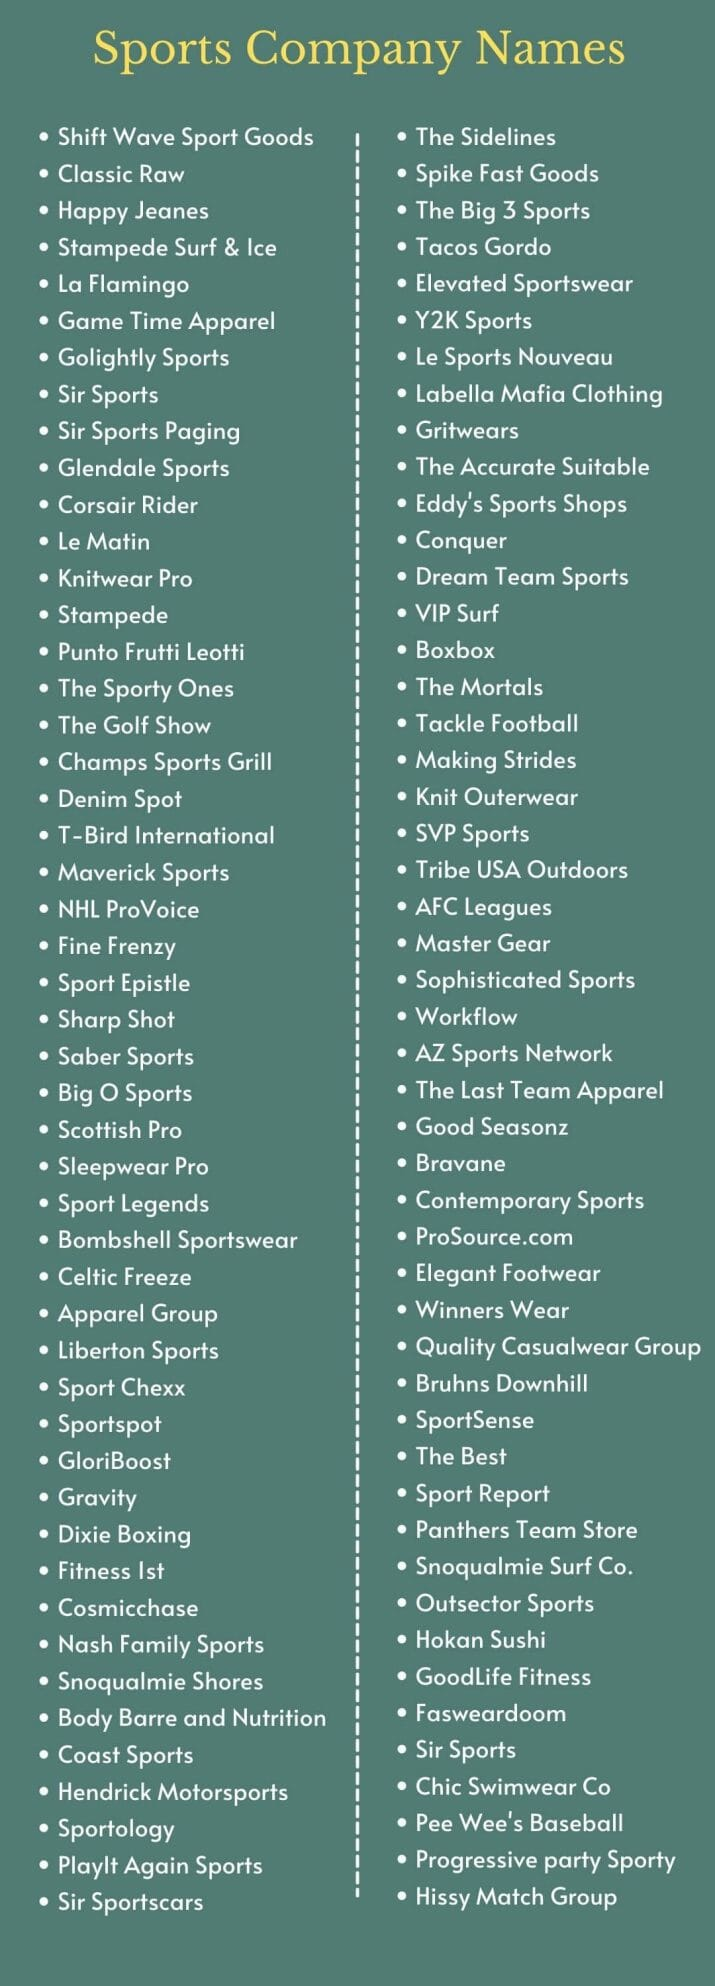 Sports Company Names: infographic